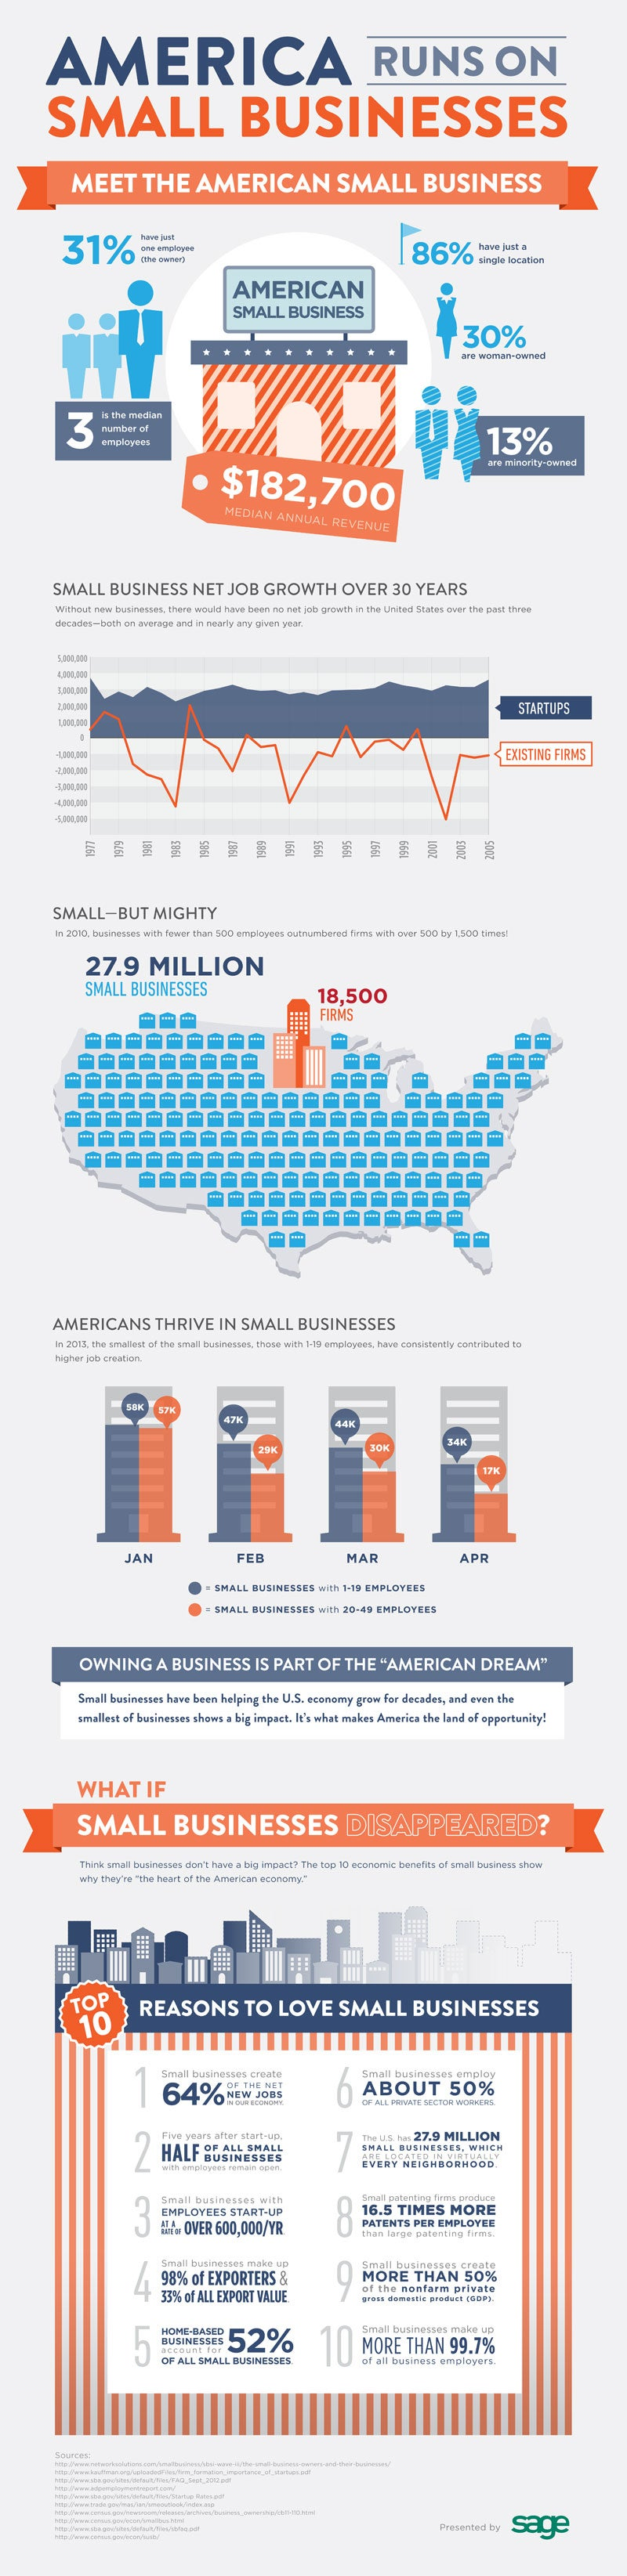 Small-Business Hiring Snapshot (Infographic)